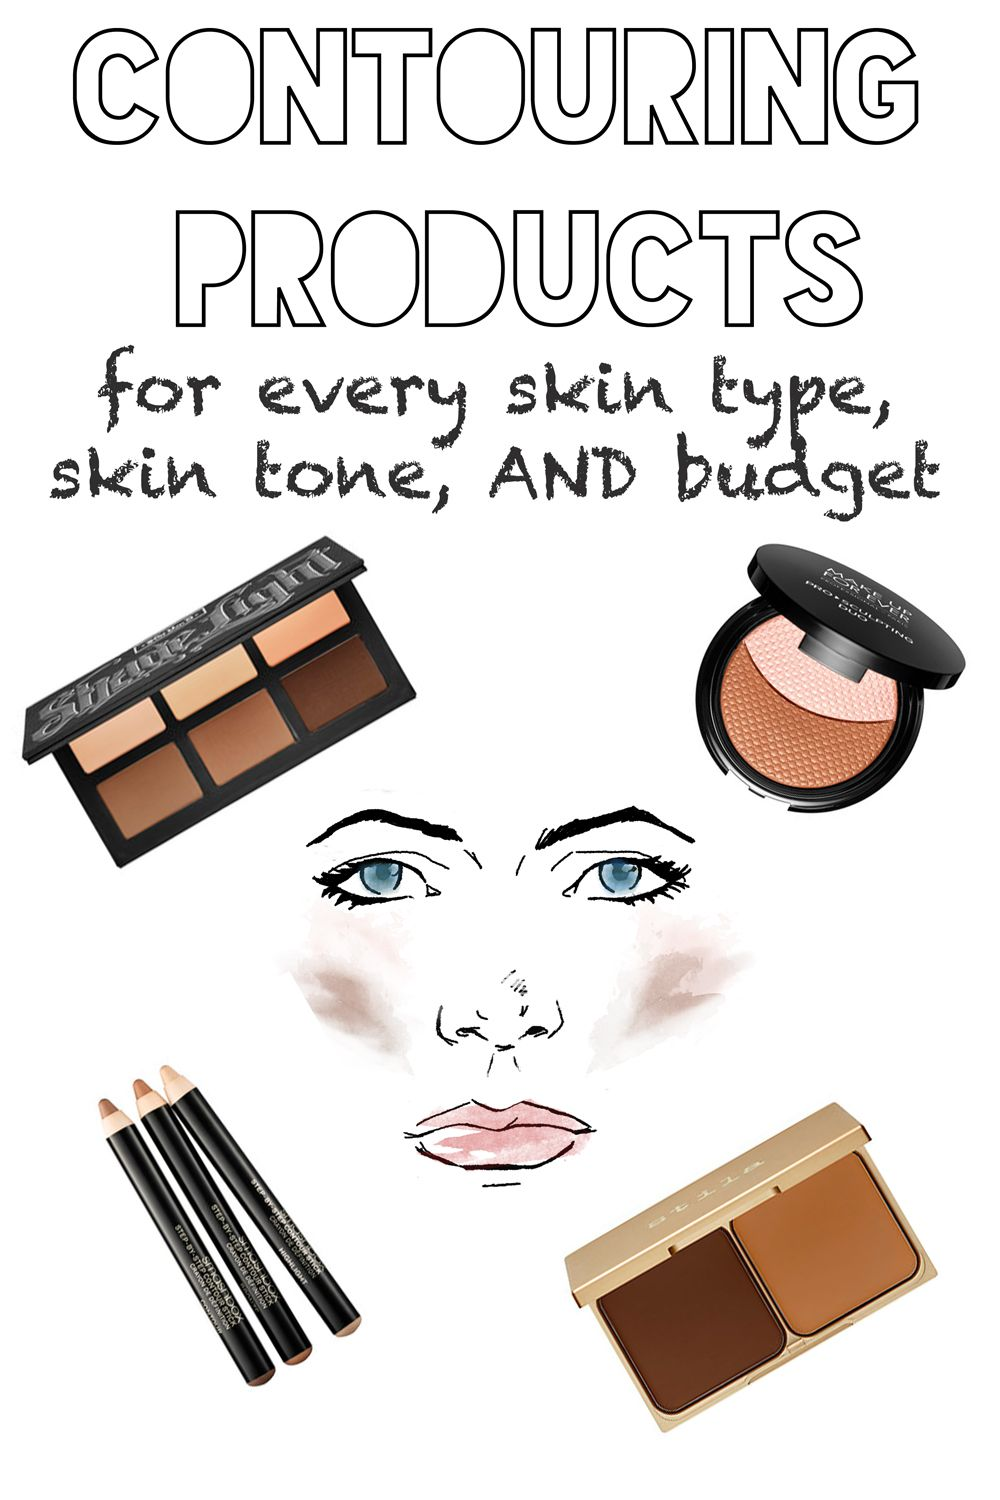 Best Contouring Products for Your Skin Type, Skin Tone